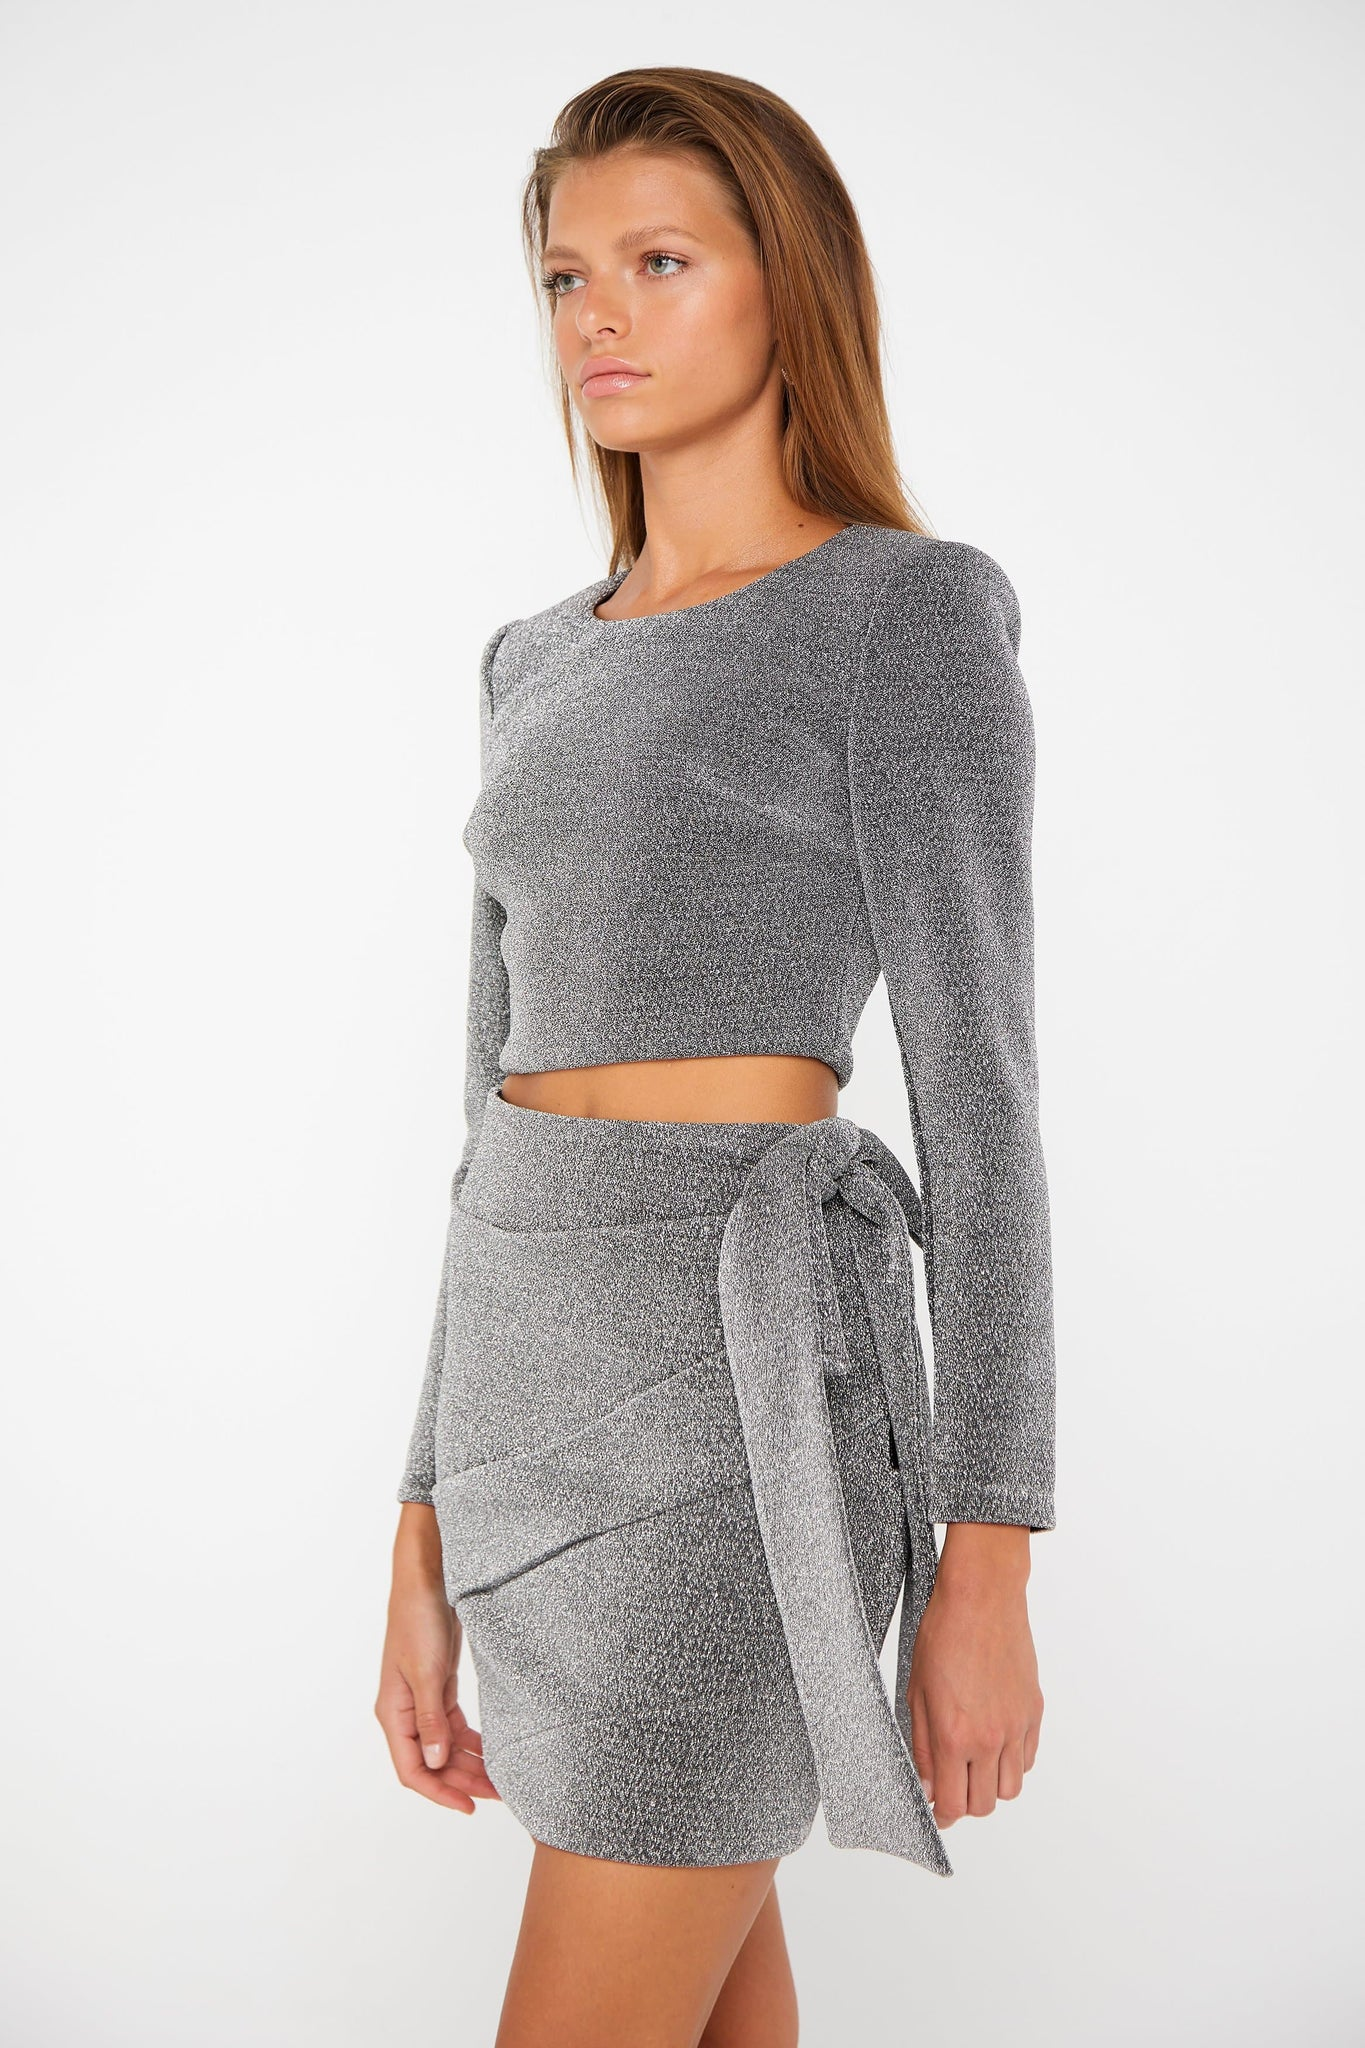 The Silver Lining Skirt